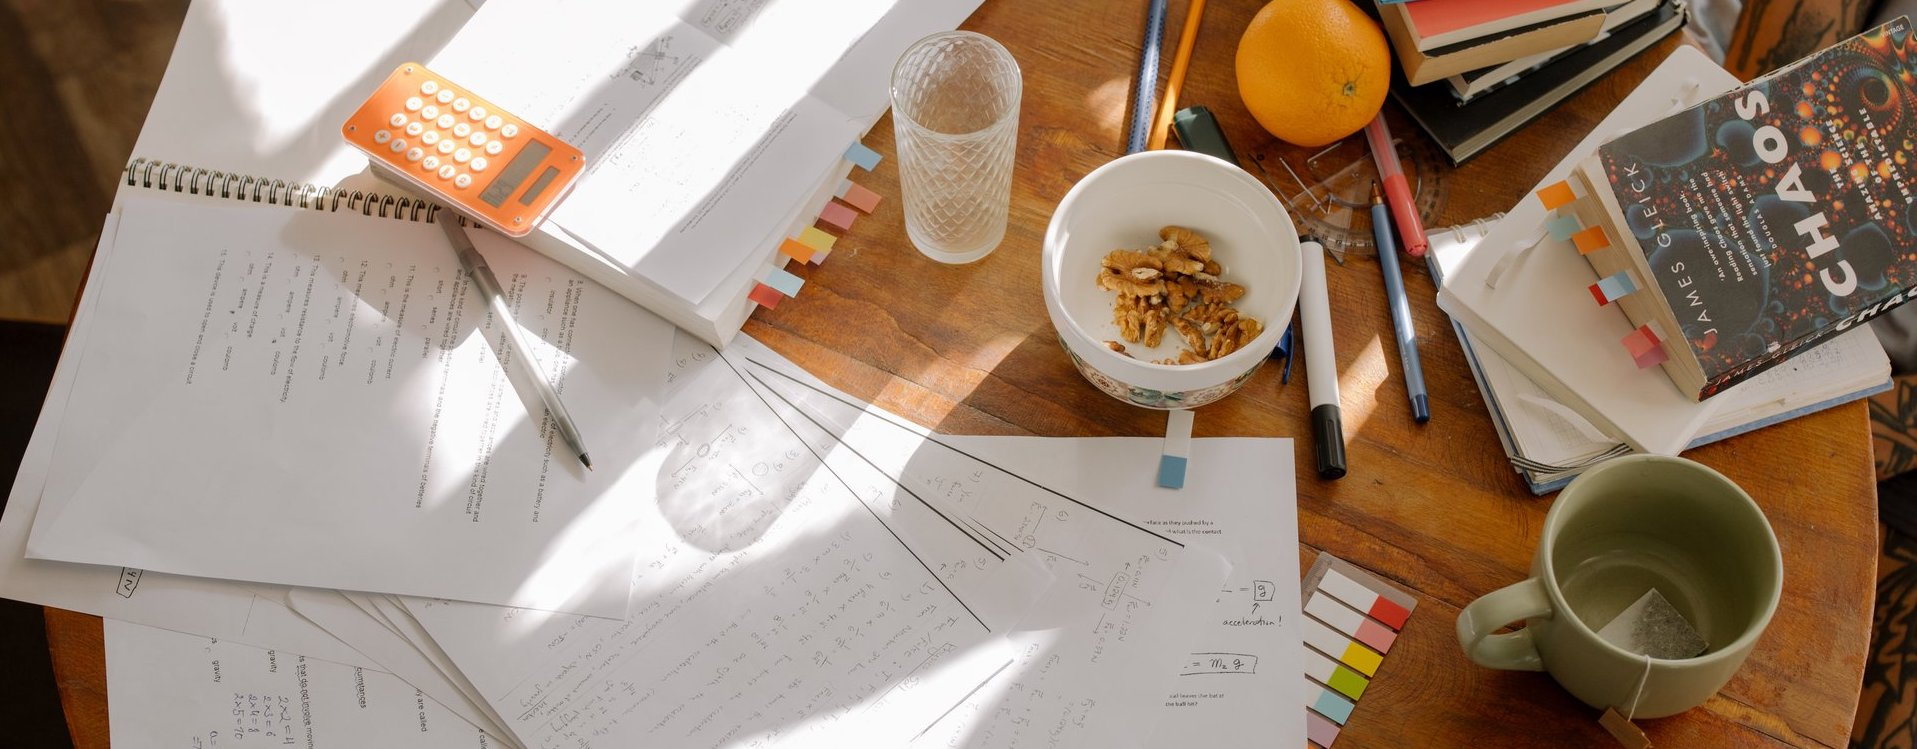 Papers, snacks, books and calculator spread out on a wooden table